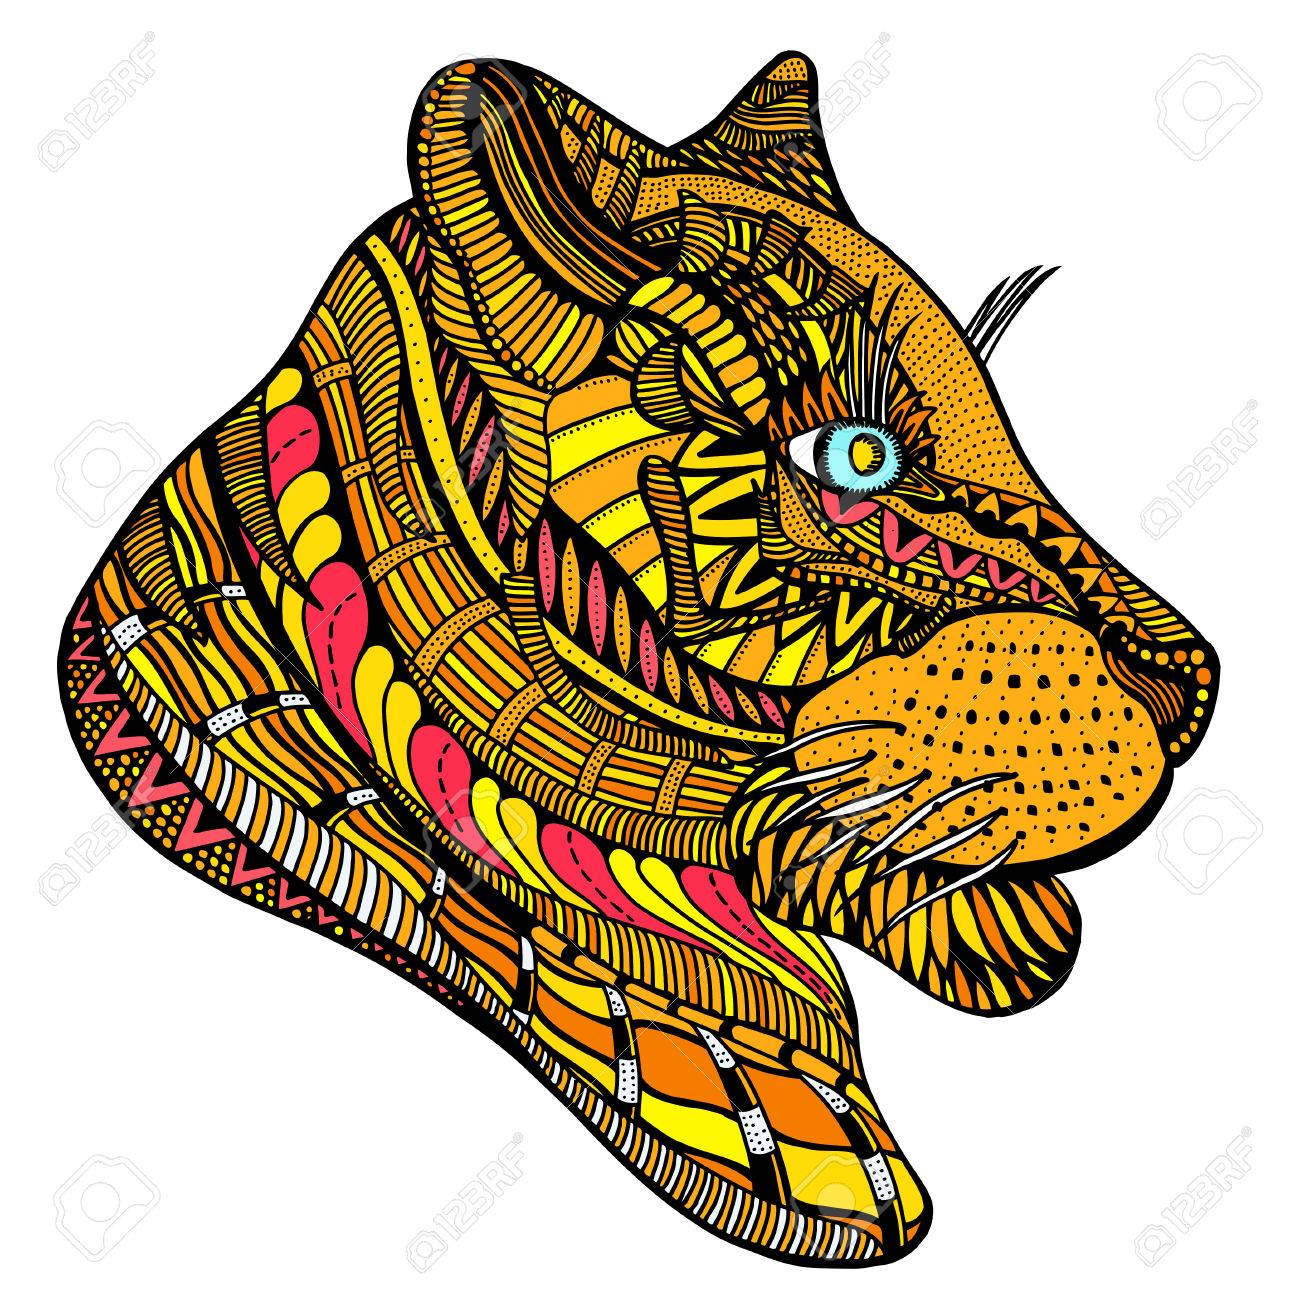 1300x1300 Tiger Head. Adult Antistress Coloring Page. Colored Hand Drawn